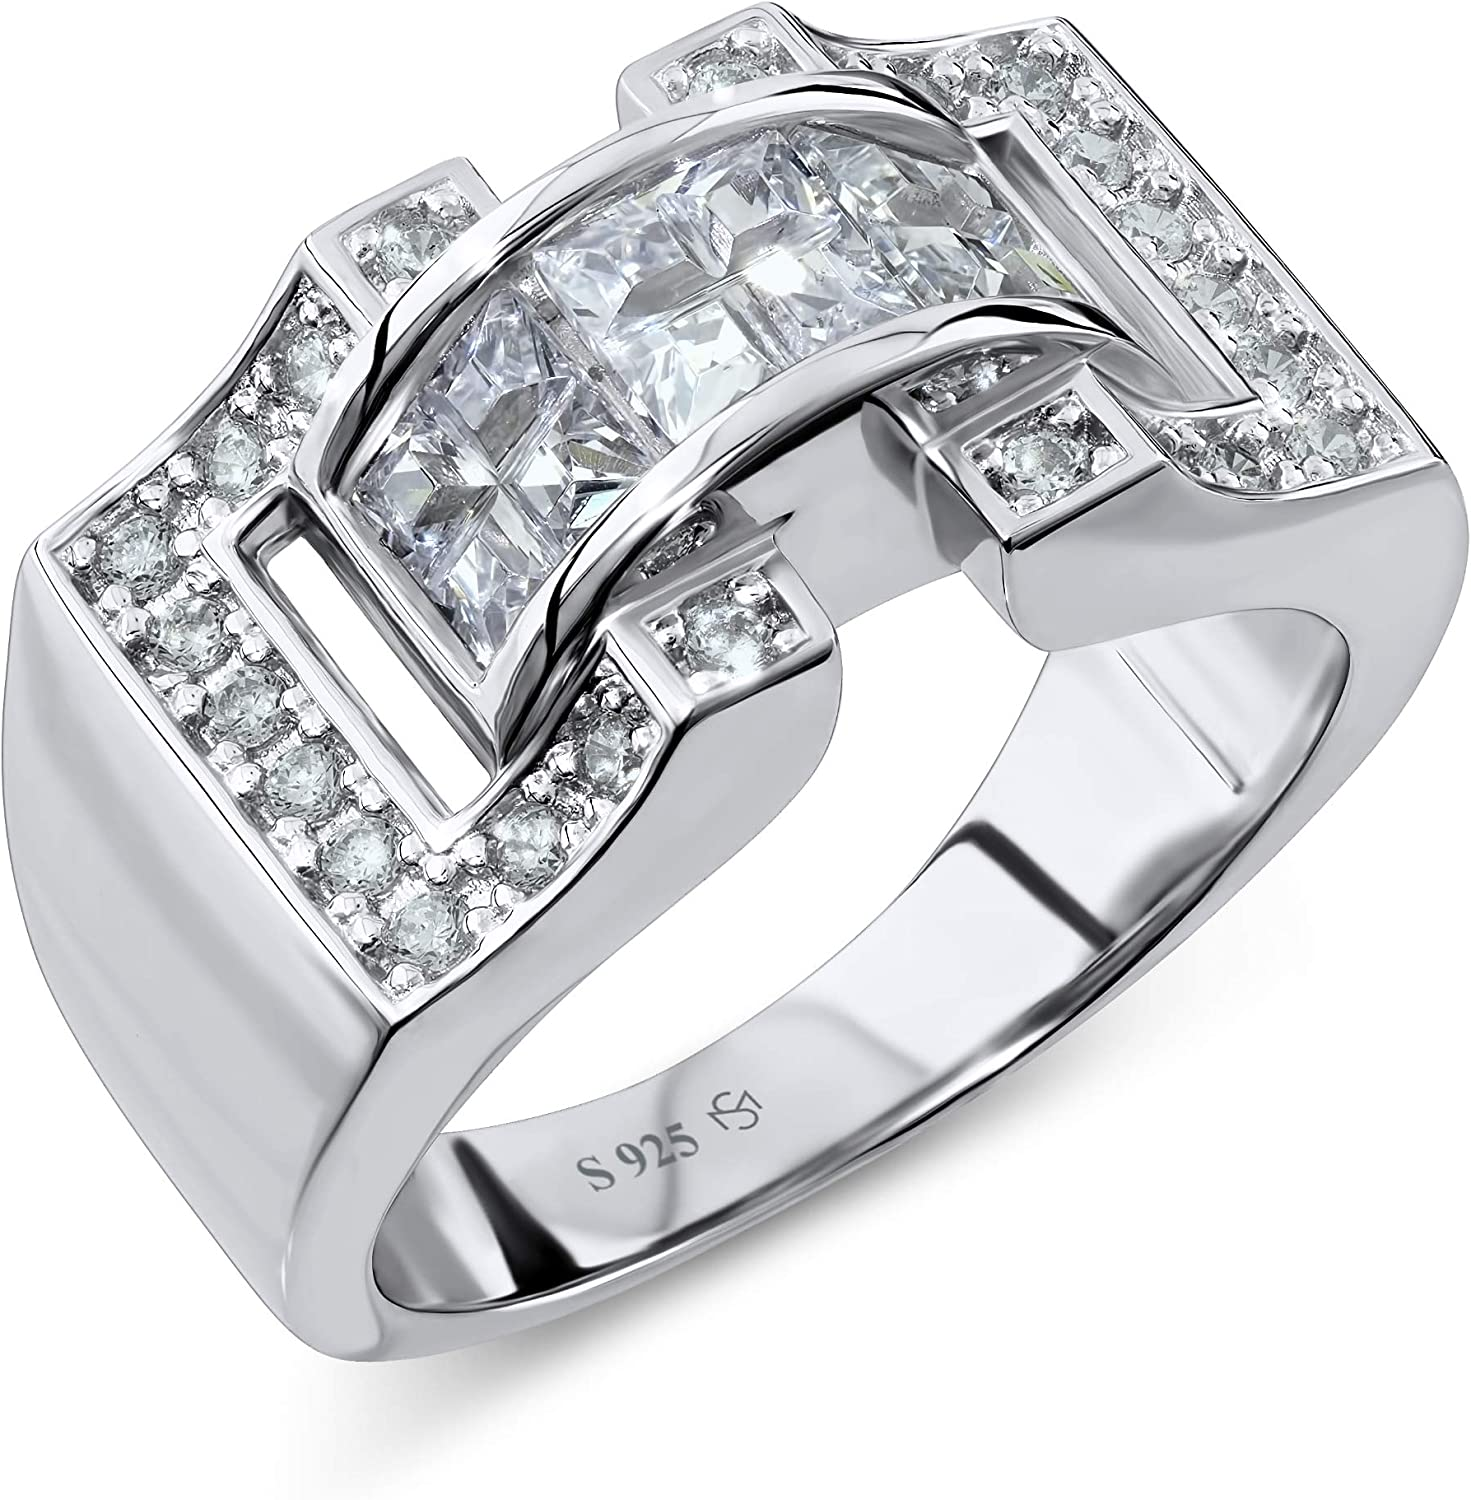 [2-5 Days Delivery] Men's Sterling Silver .925 Ring Featuring 27 Prong-set and Channel-set Cubic Zirconia (CZ) Stones